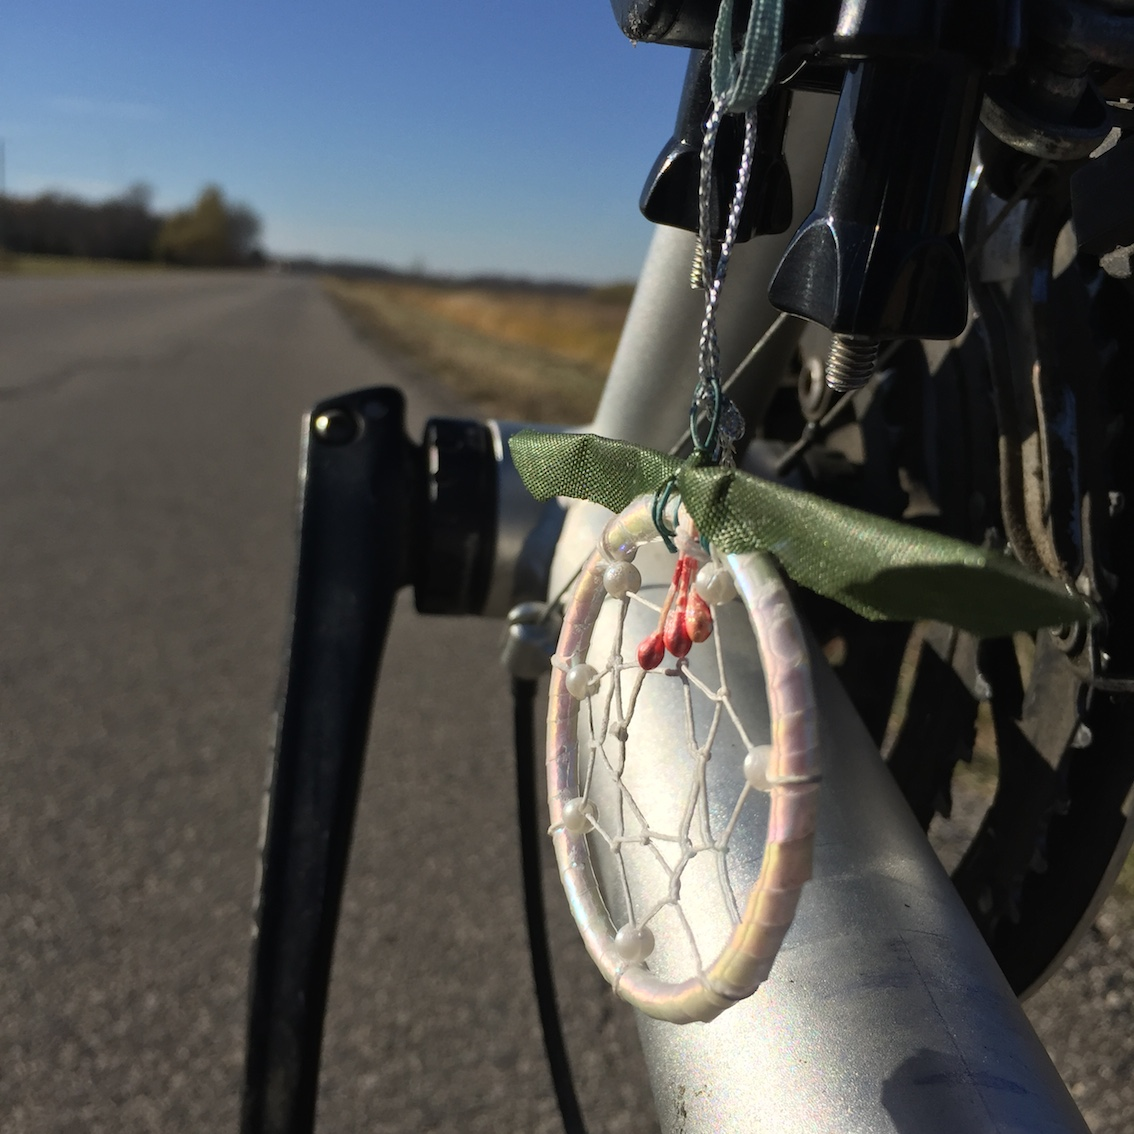 In over 2000 km of highway travel a total of about 4 cars stopped to say hello. I was gifted this wonderful little dream catcher by a kindred spirit as I biked towards Portage la Prairie.